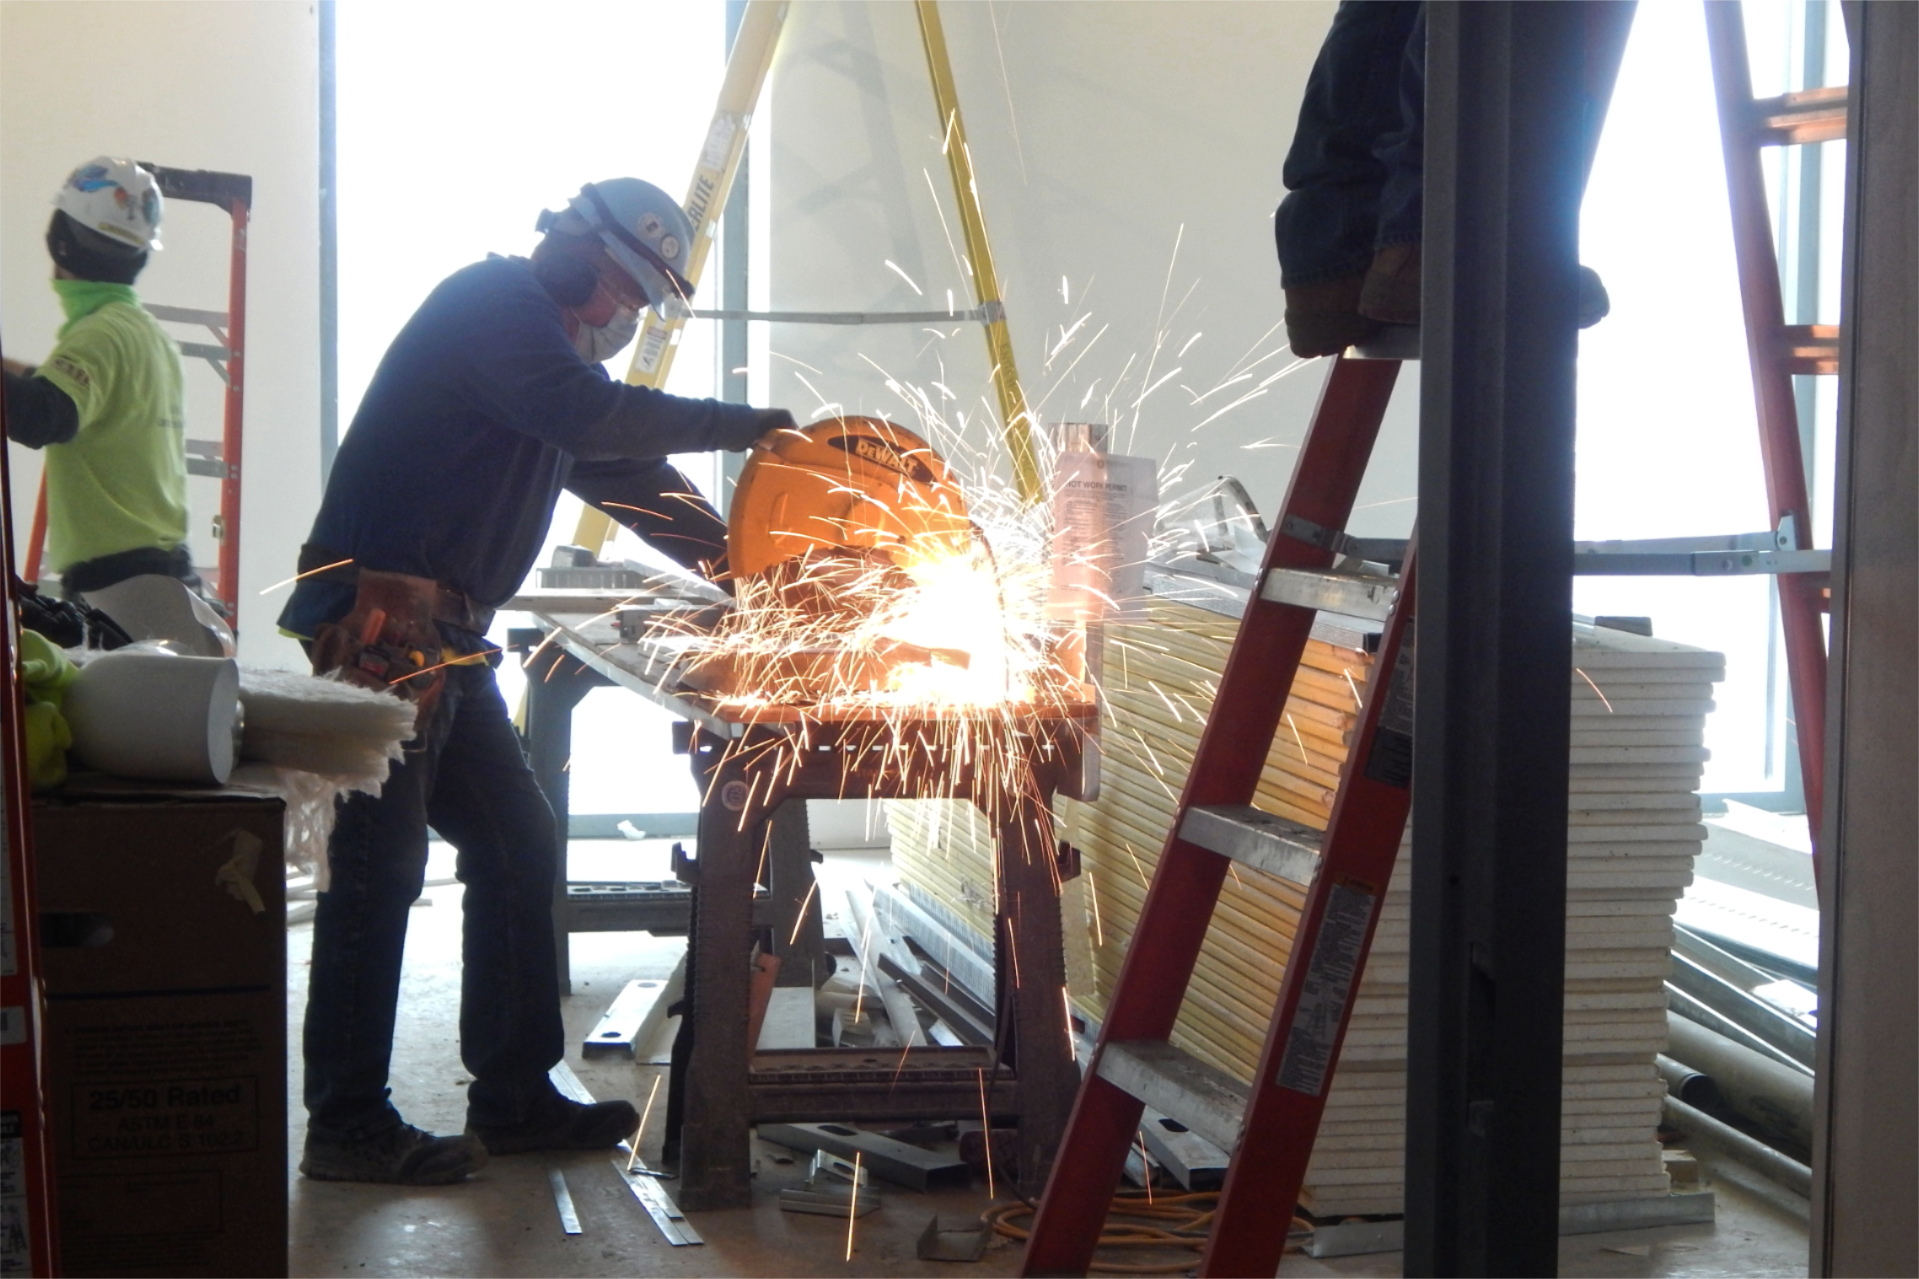 A Roland's Drywall employee cuts a section of metal wall framing. (Doug Hubley/Bates College)